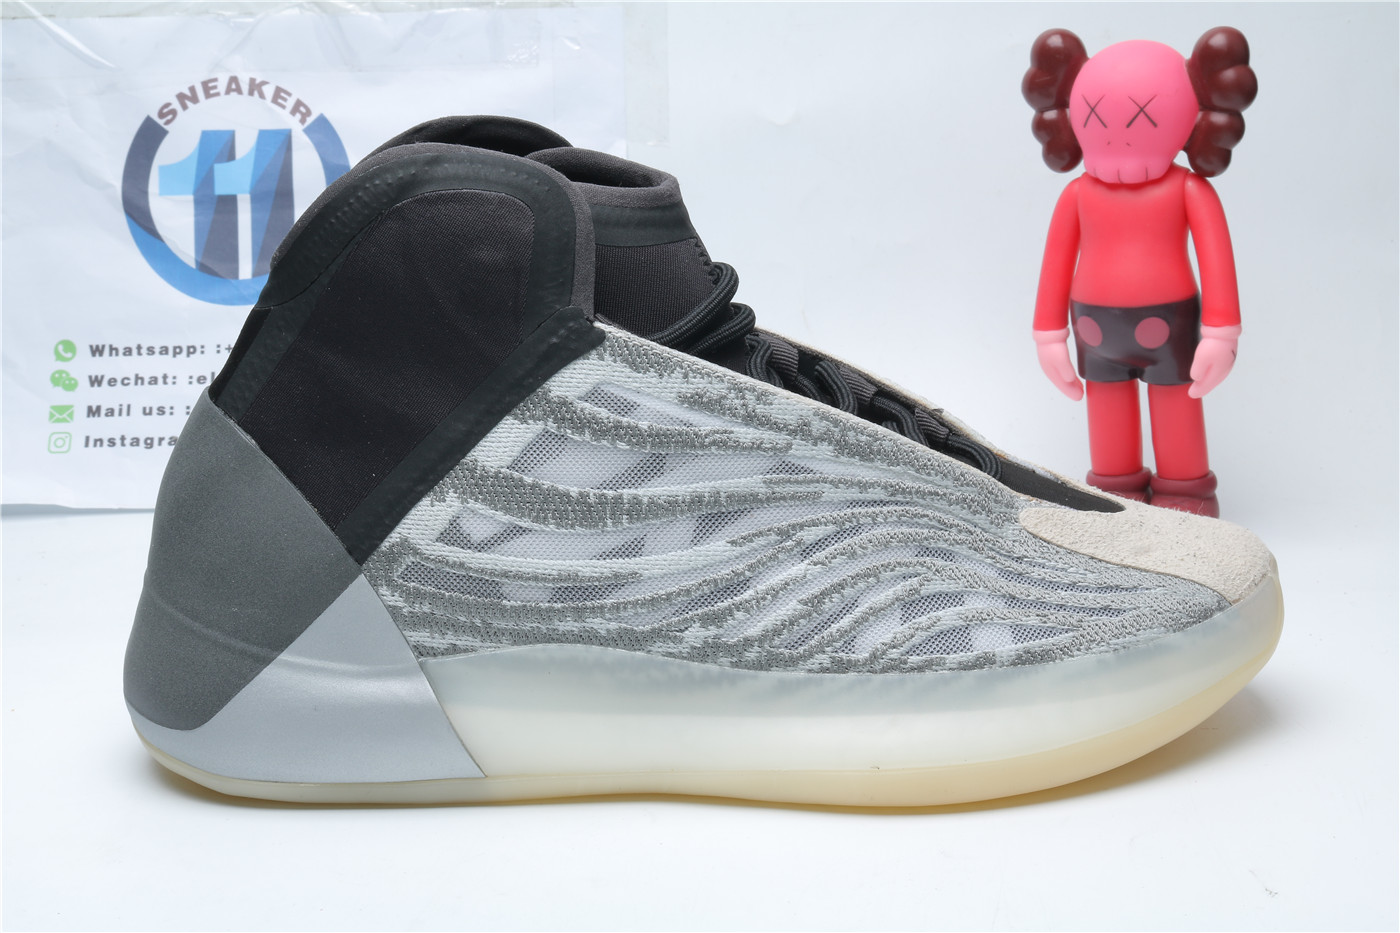 Adidas Yeezy Basketball Quantum,All Products : Eleven Kicks, Eleven Kicks